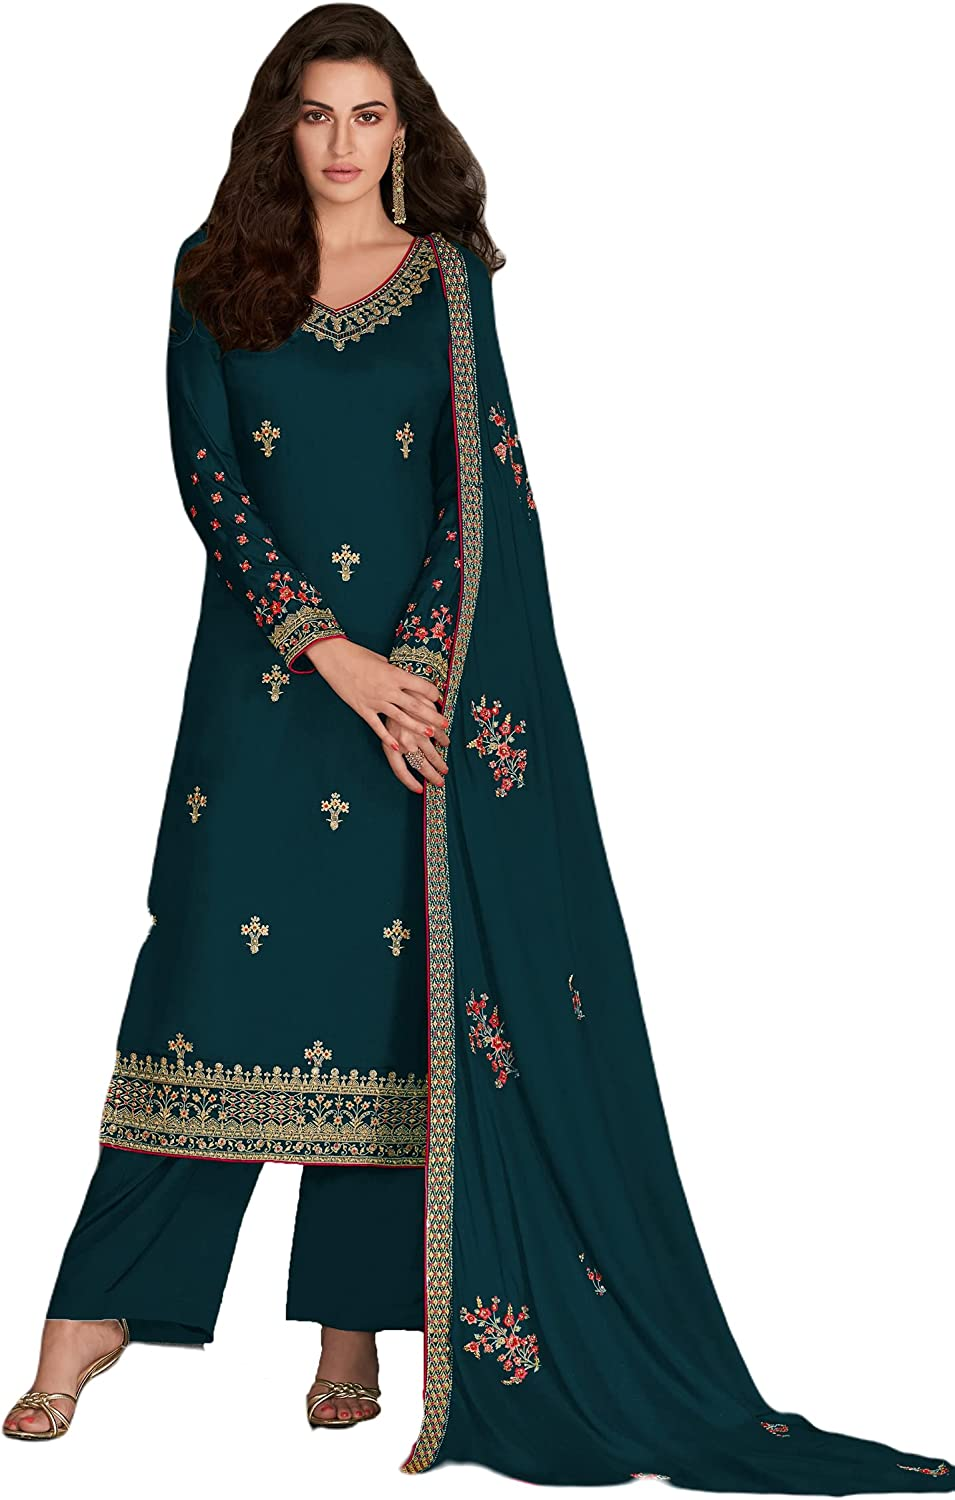 Palazzo Style Suit for Indian Pakistani Women Embroidered Dress Salwar Kameez Suit